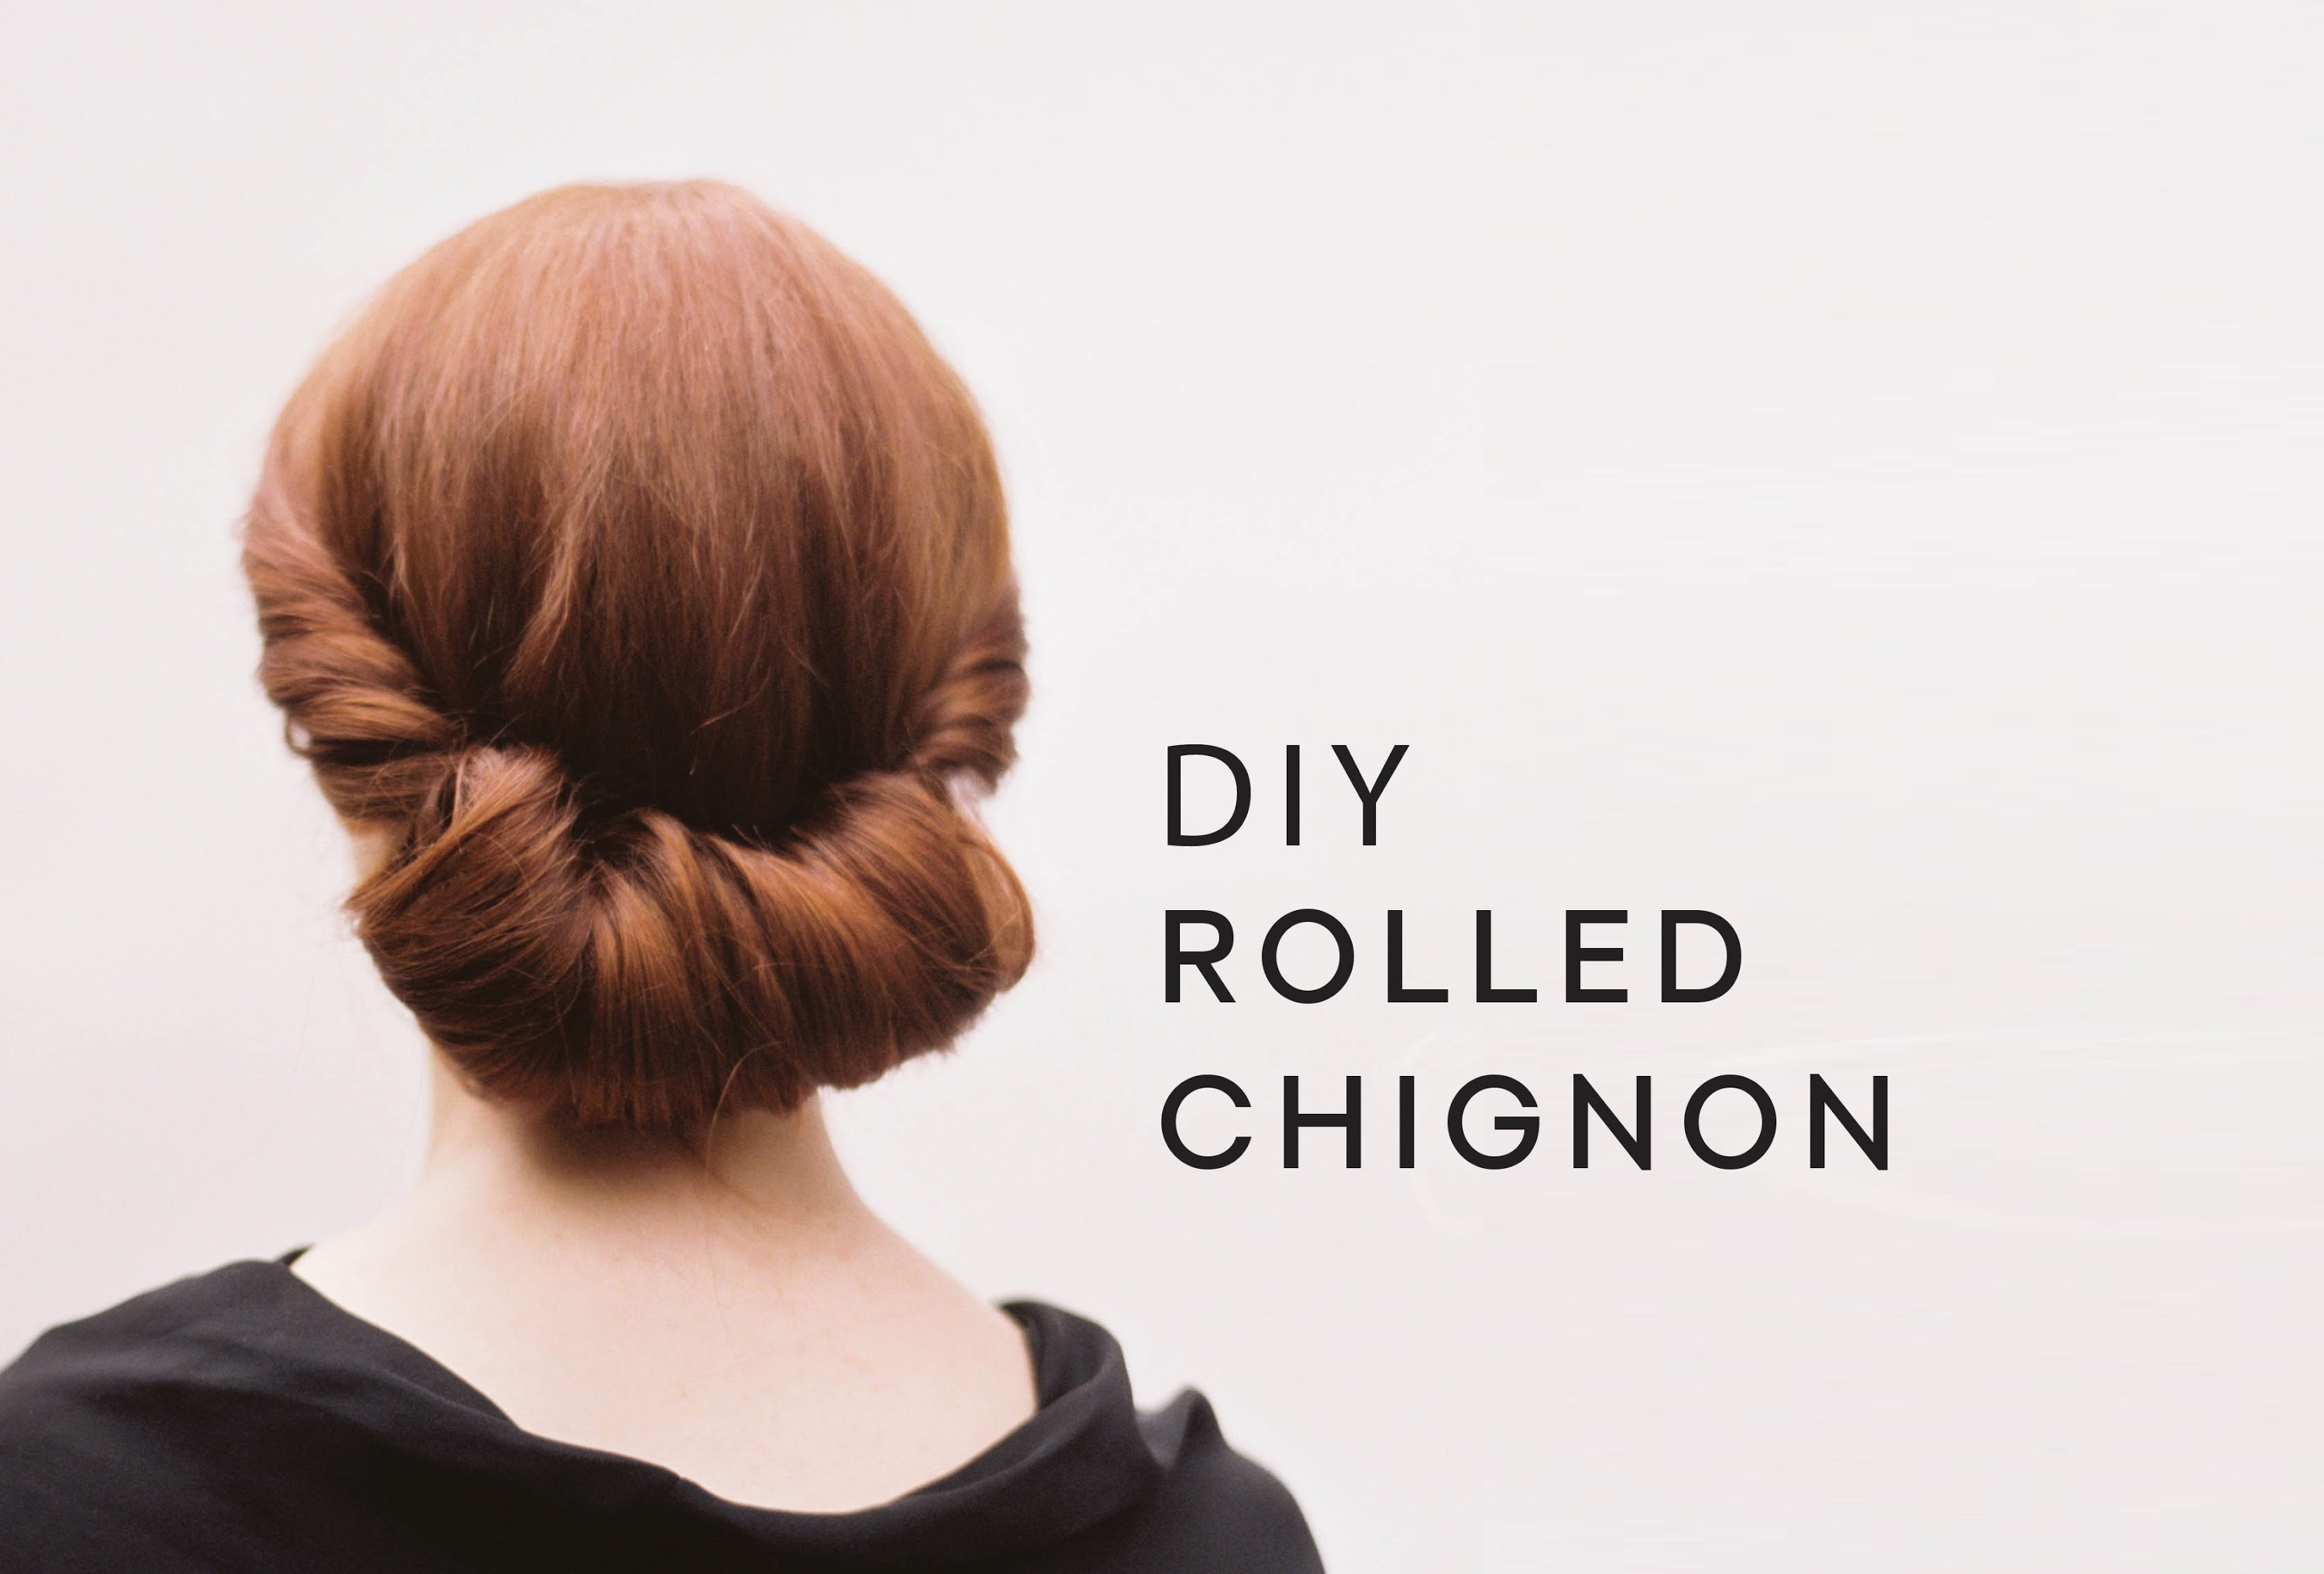 Rolled chignon hair tutorial